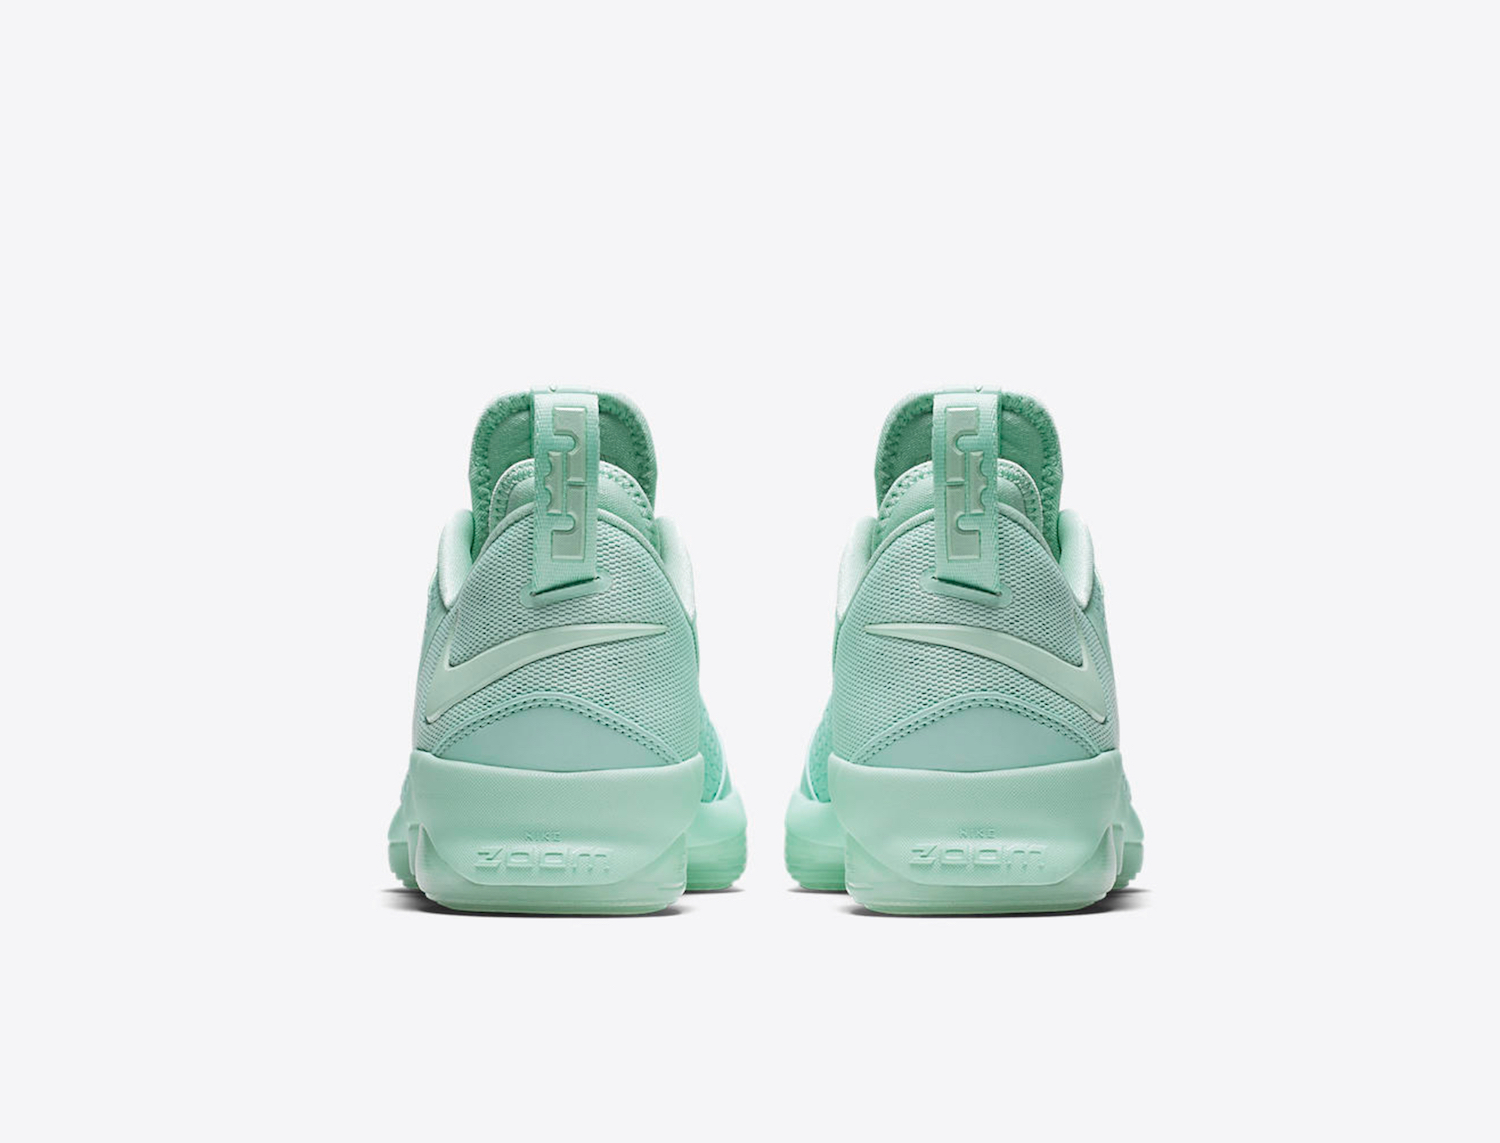 4d57897c8f5f nike lebron 14 low mint foam 8 - WearTesters